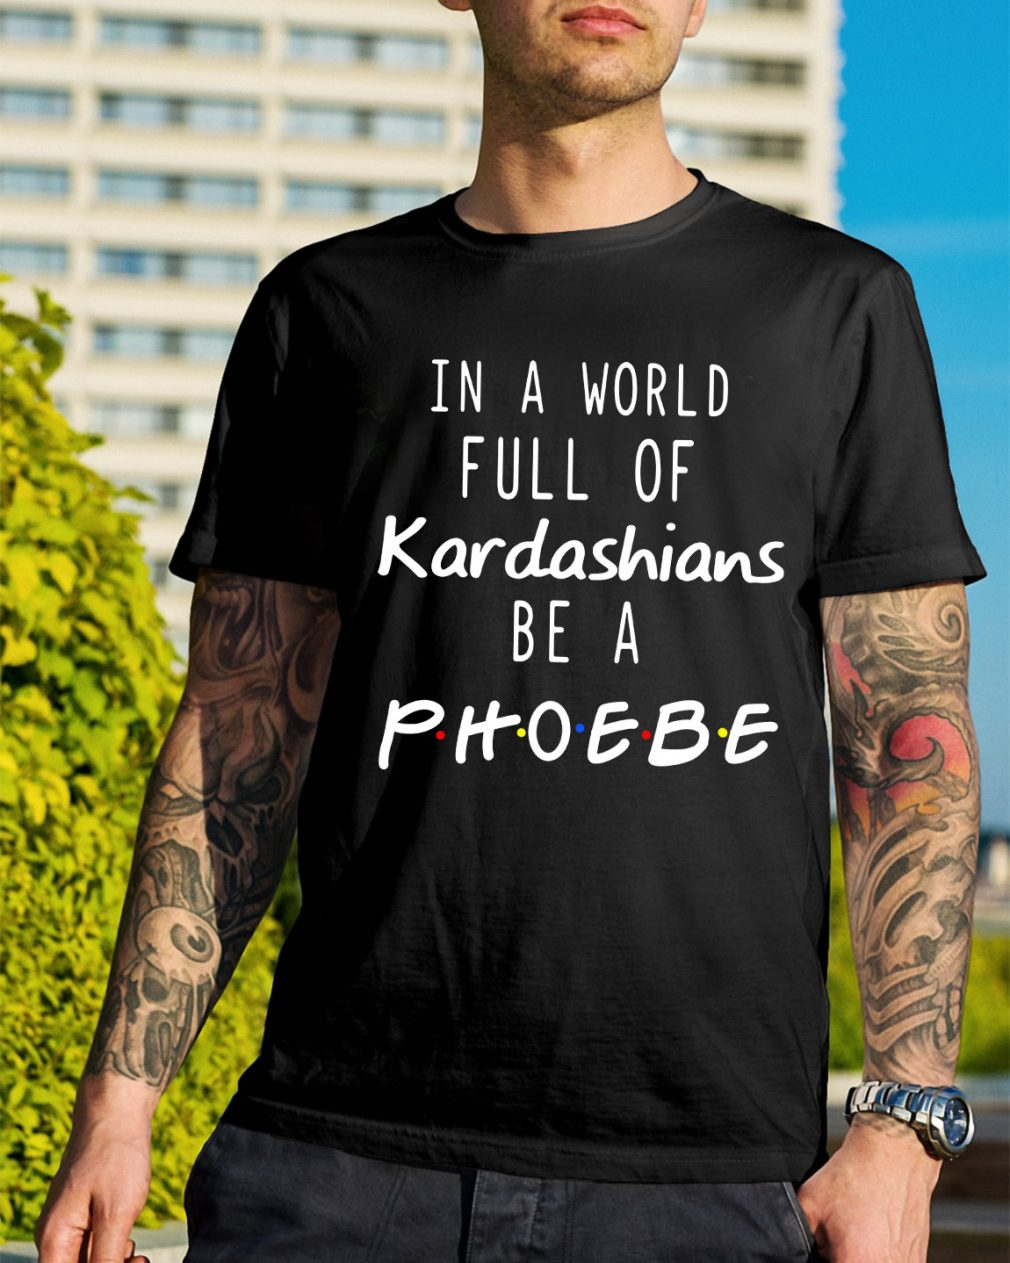 In a world full of Kardashians be a Phoebe shirt